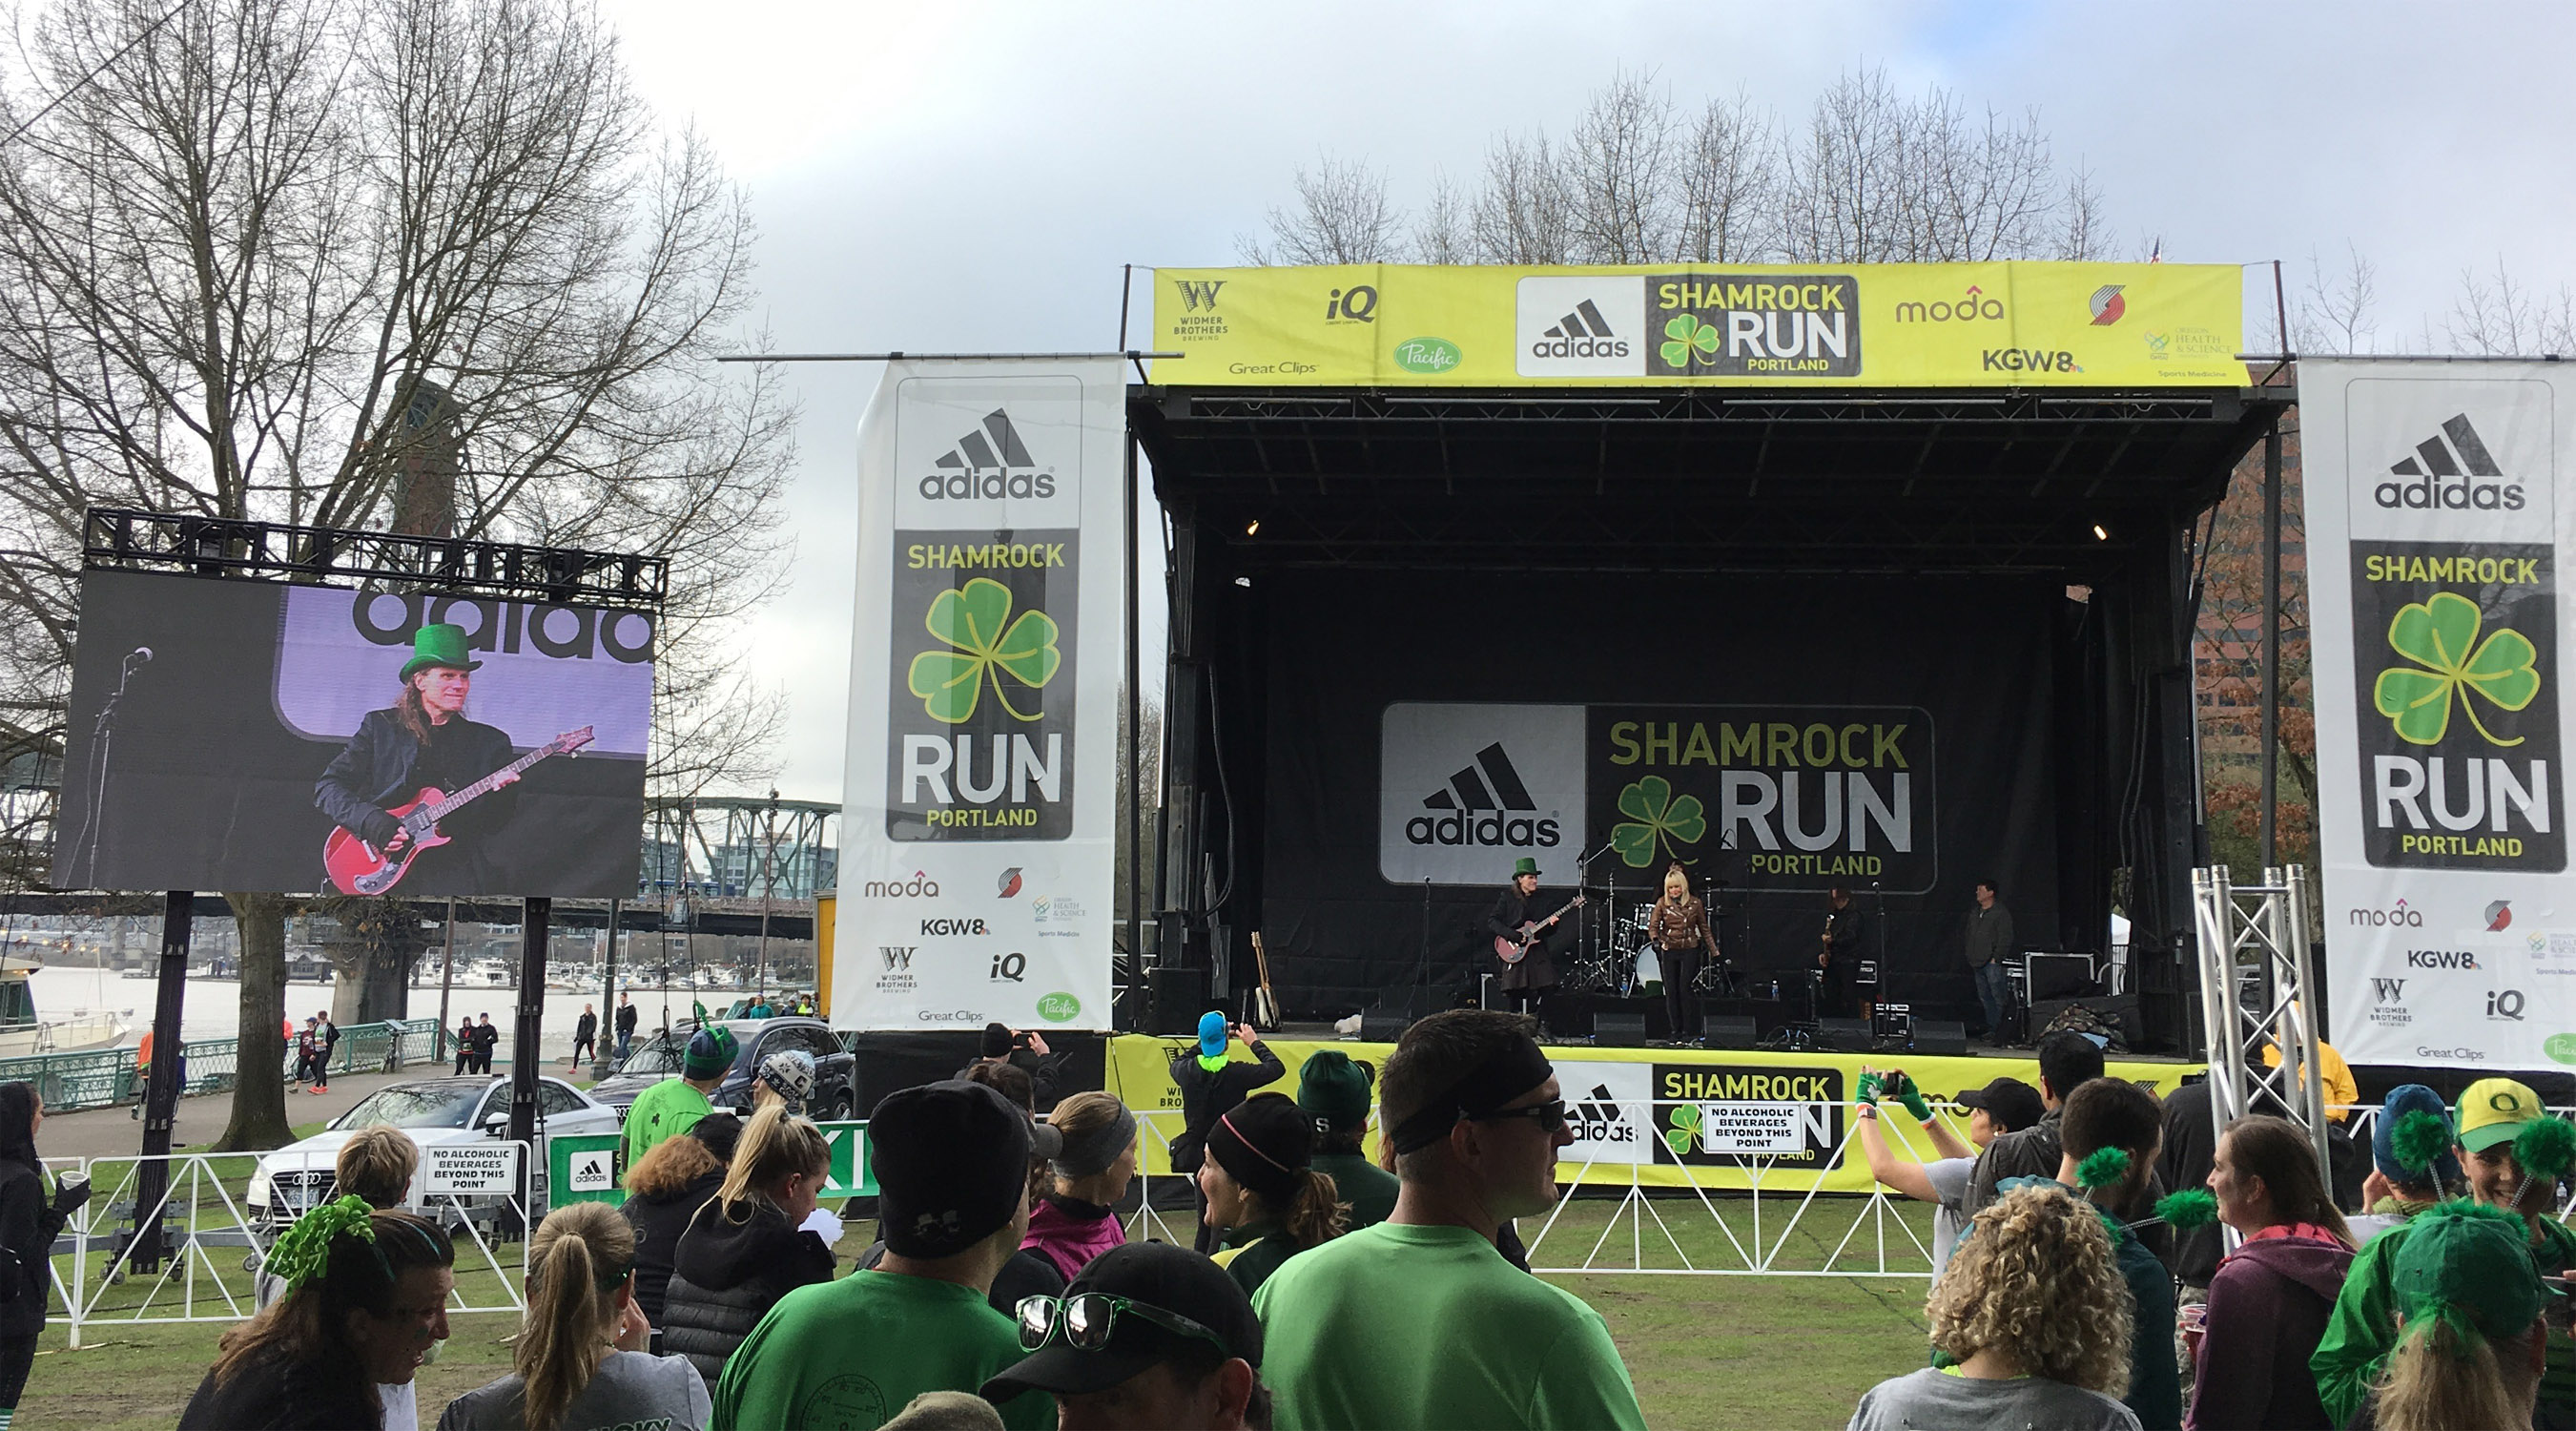 Shamrock Fun Run LED video wall